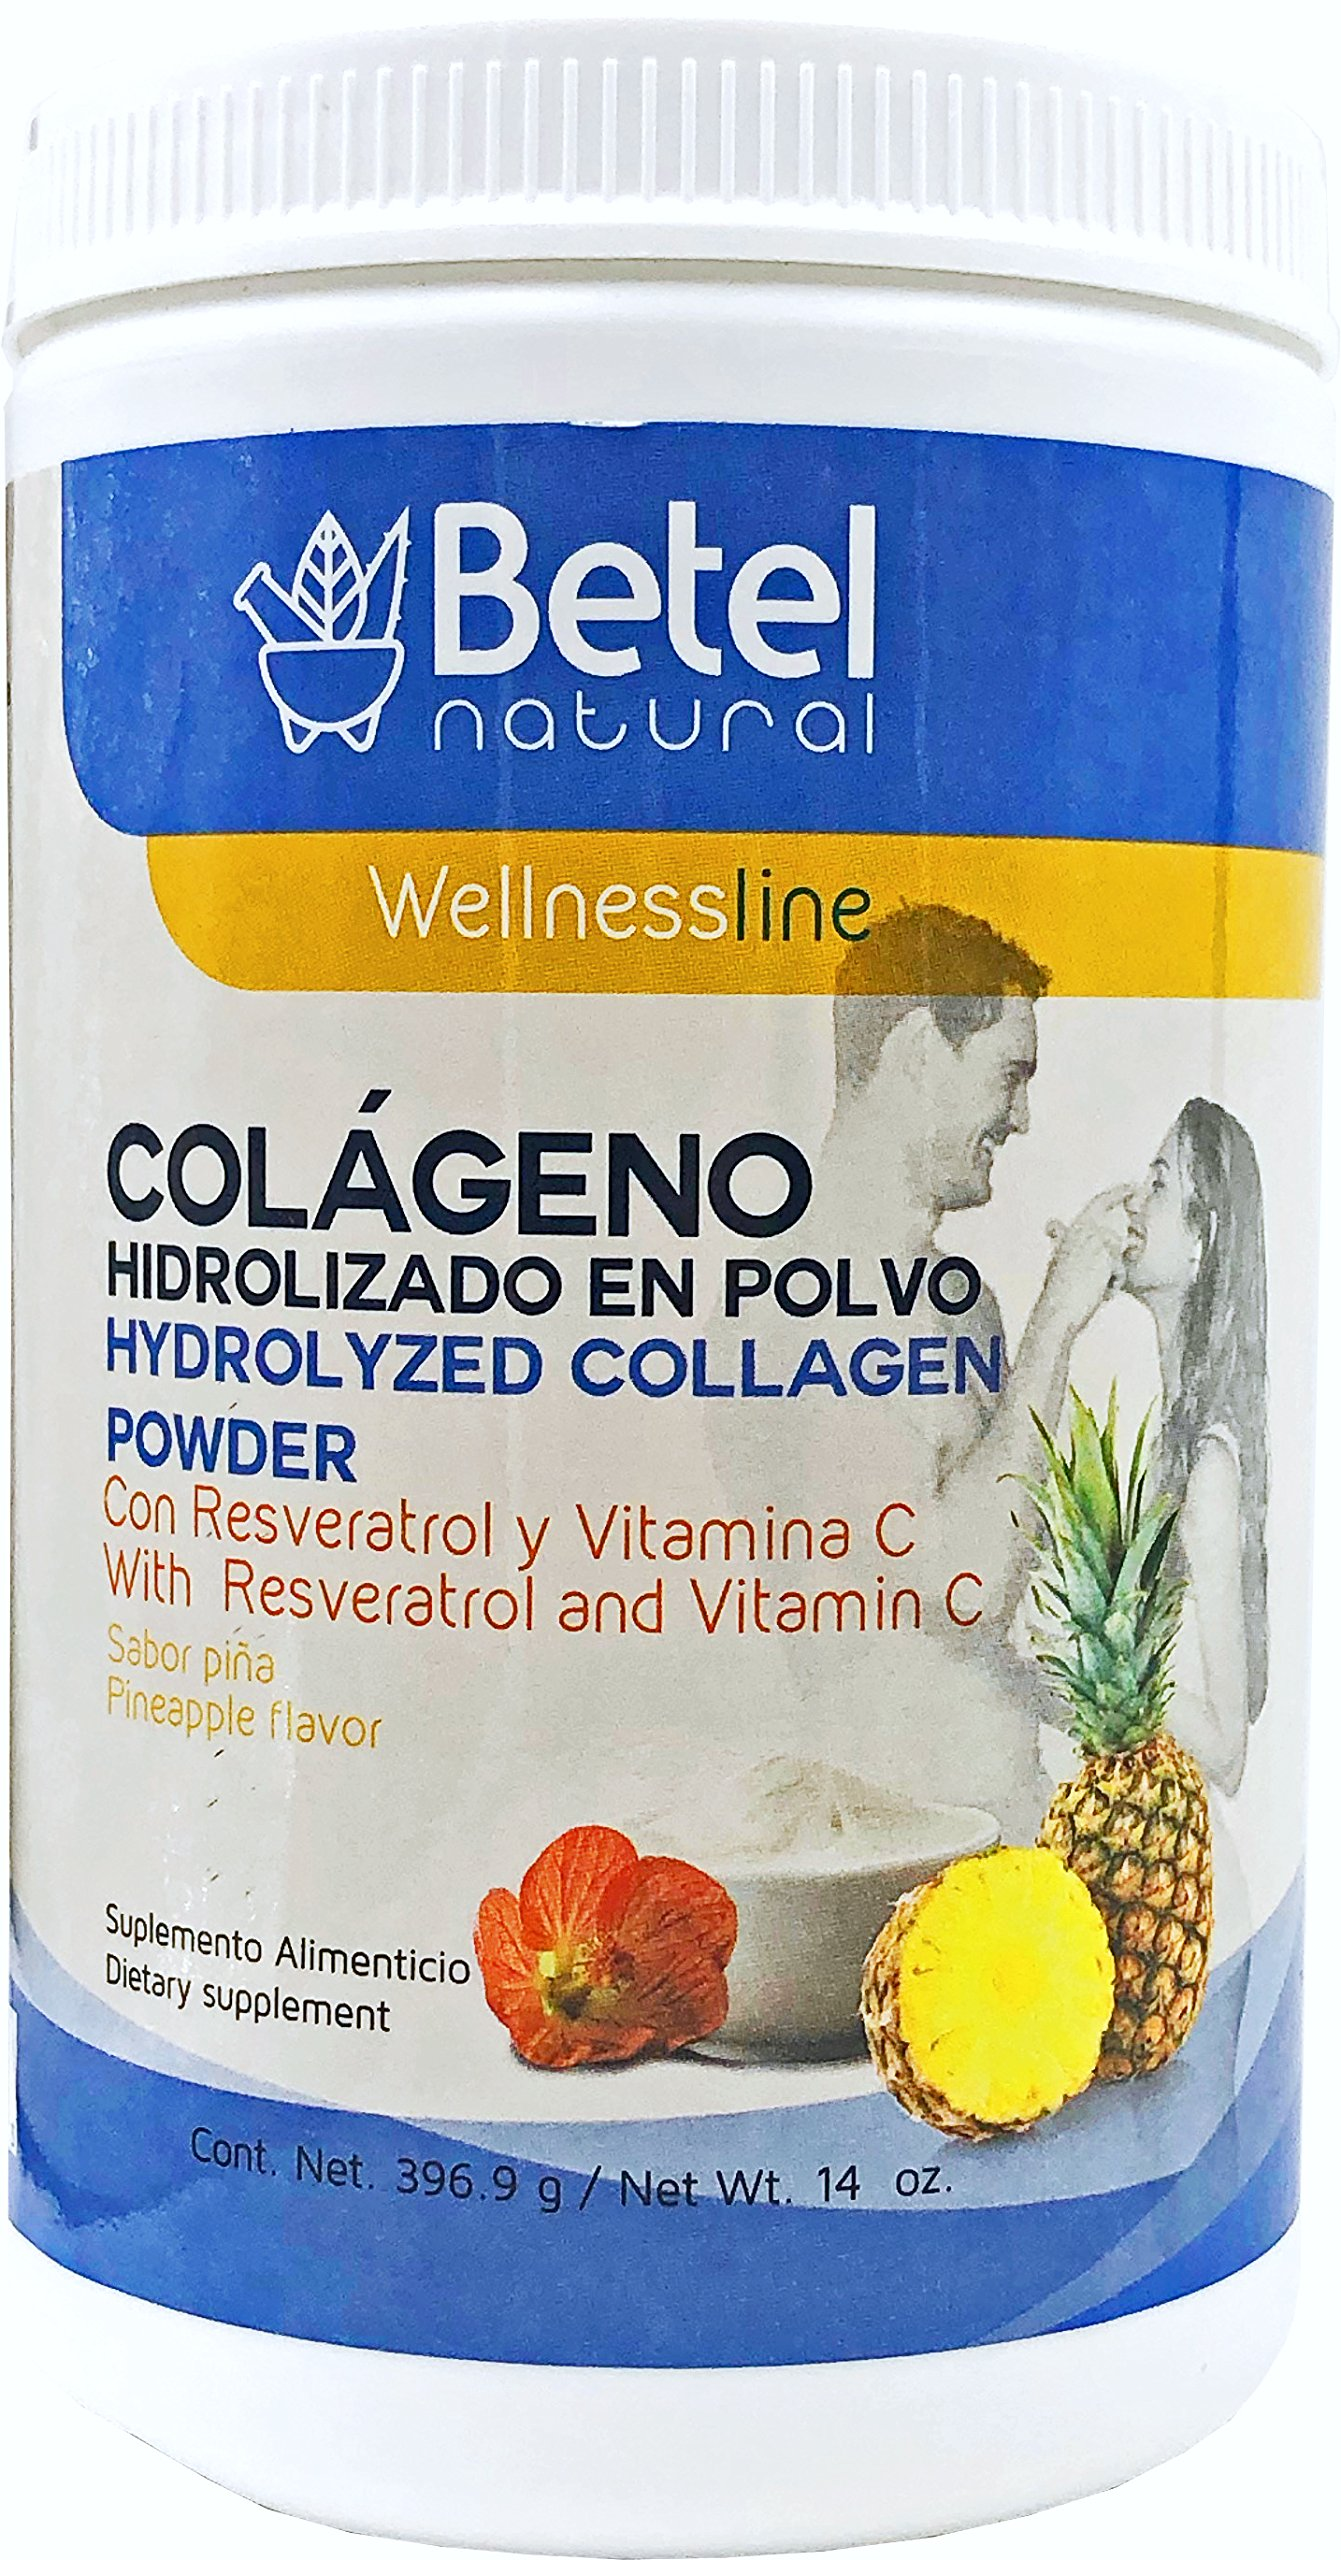 Amazon.com: Colágeno (Hydrolyzed Collagen) - Betel Natural - Pineapple flavor: Health & Personal Care